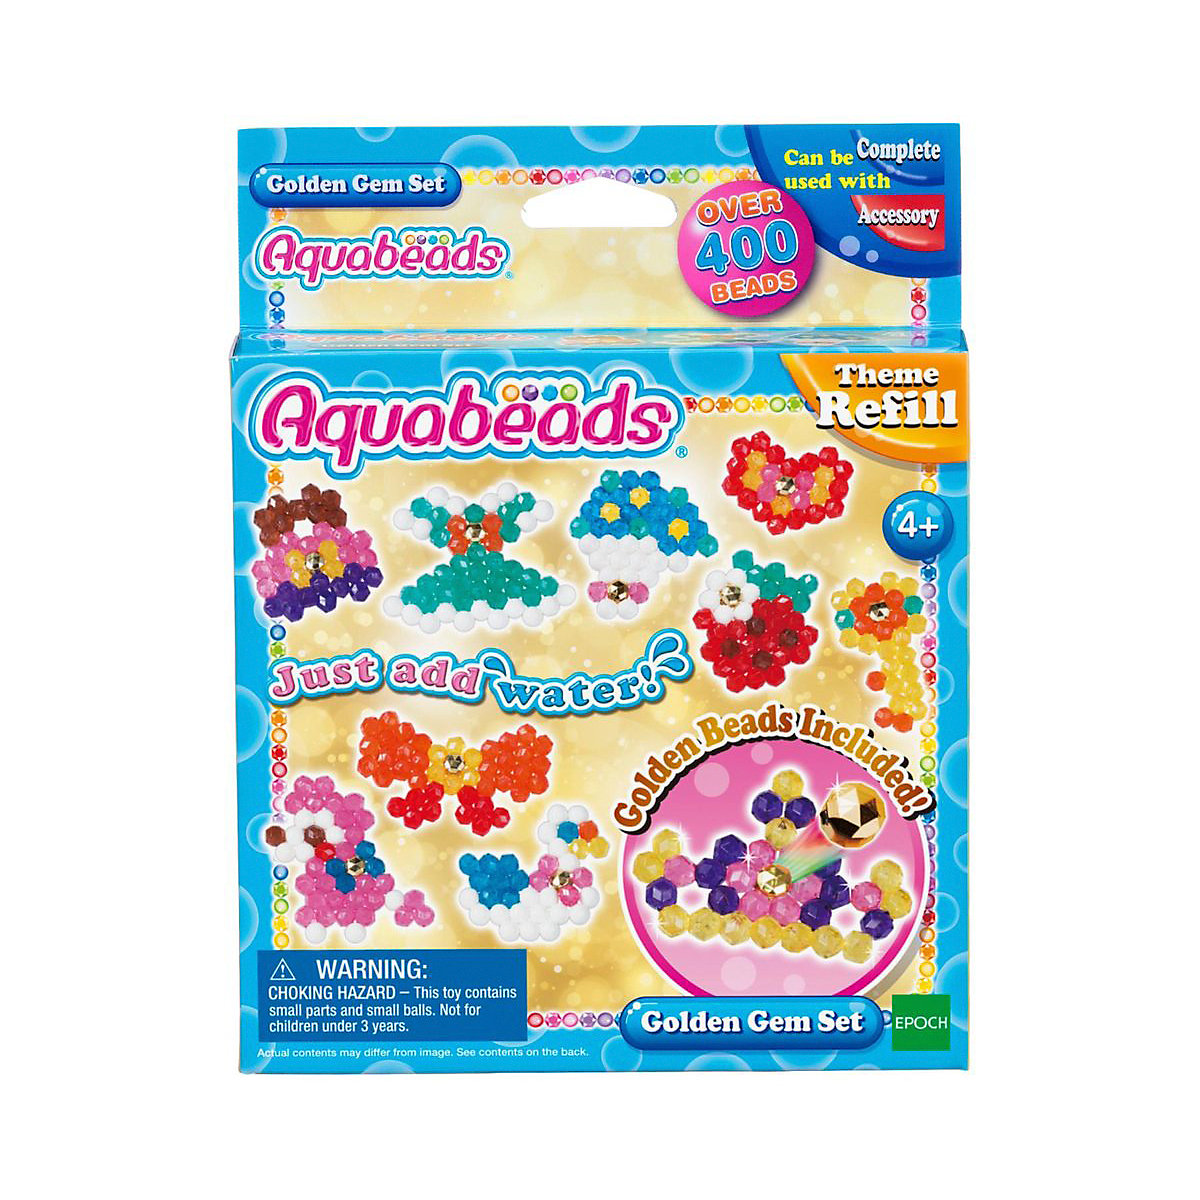 Aquabeads Beads Toys 10134716 Creativity Needlework For Children Set Kids Toy Hobbis Arts Crafts DIY